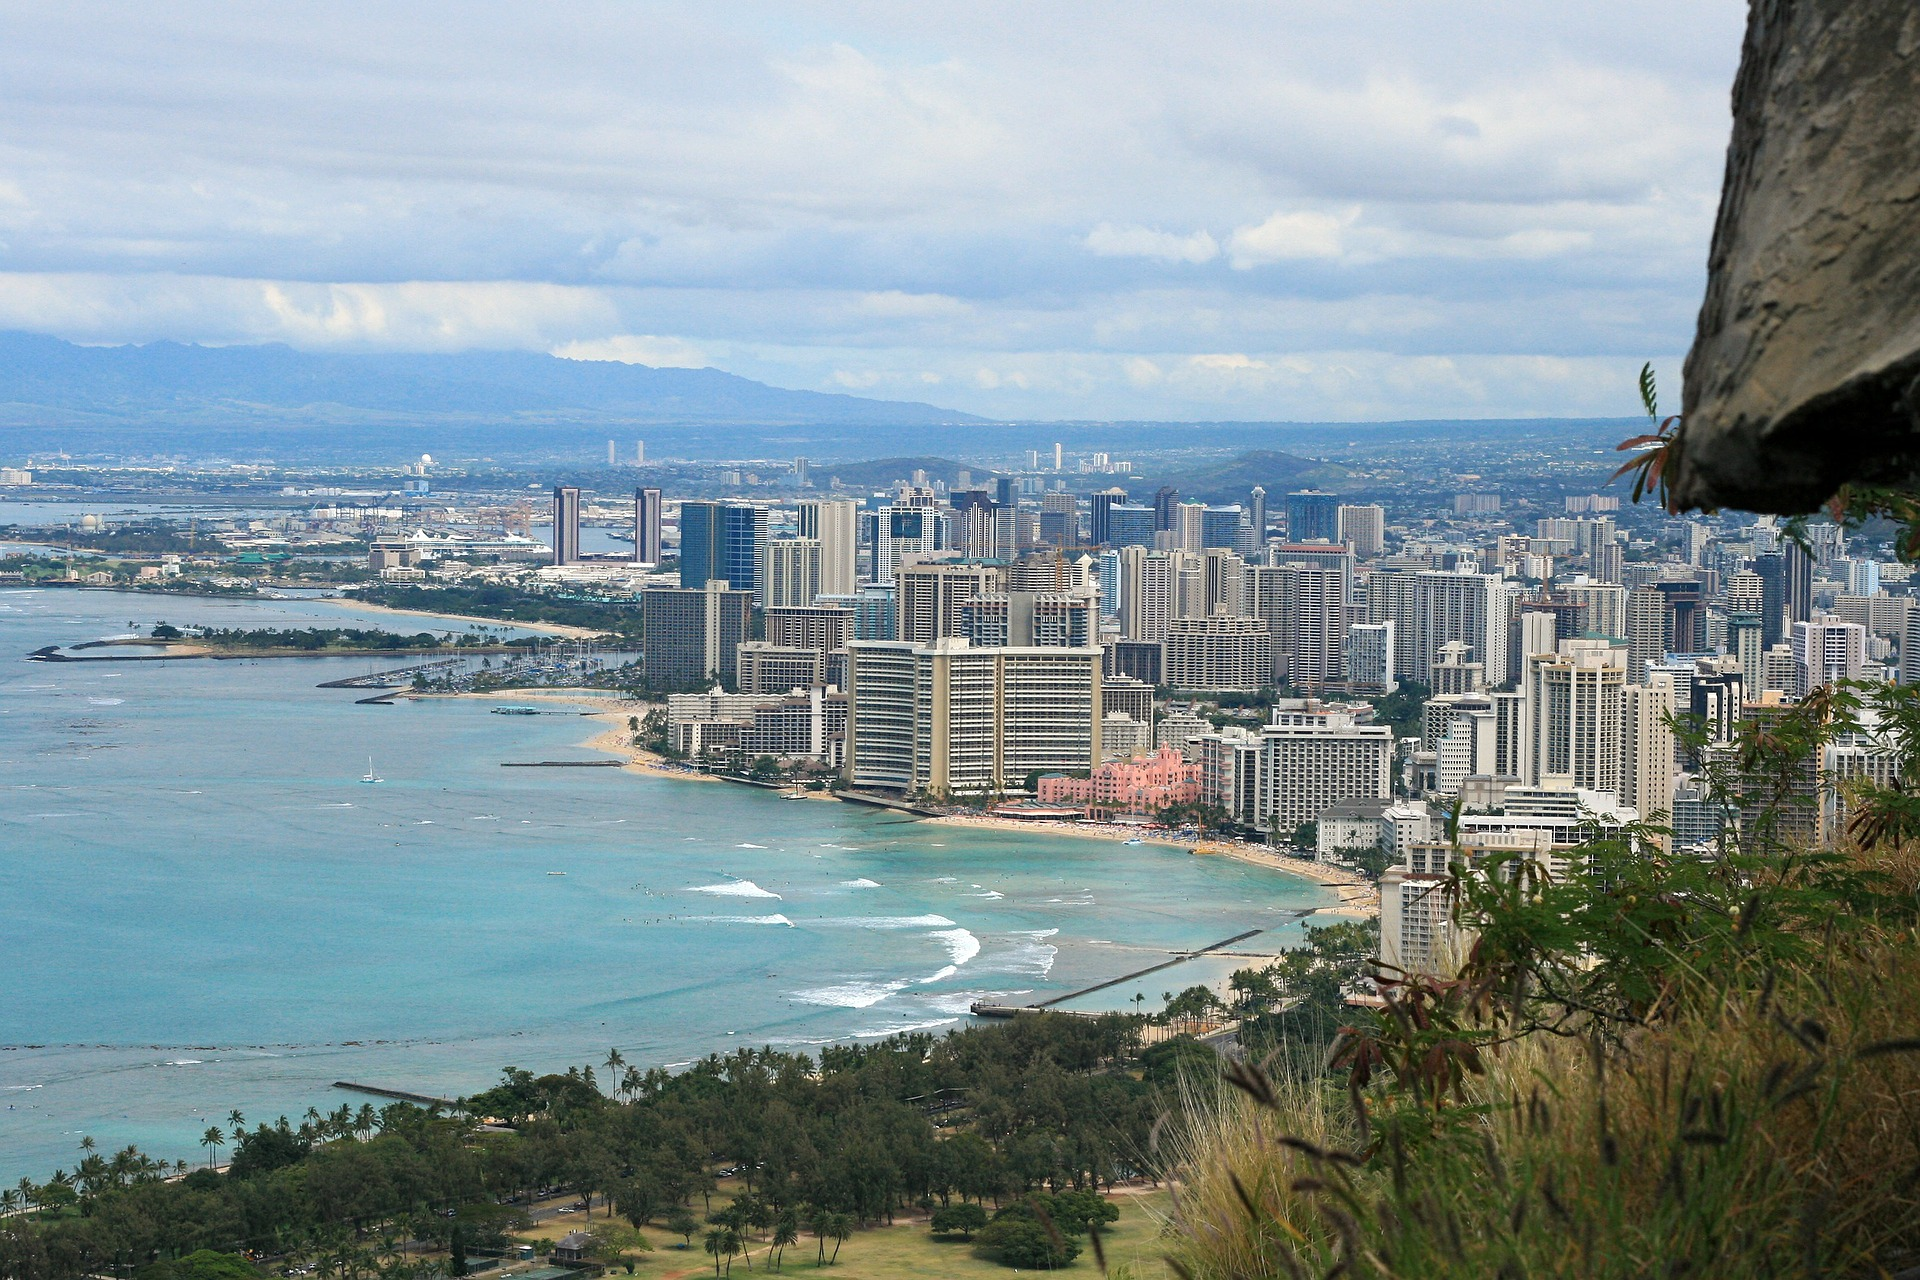 Waikiki Beach, Diamond Head, Honolulu, Hawaii, USA